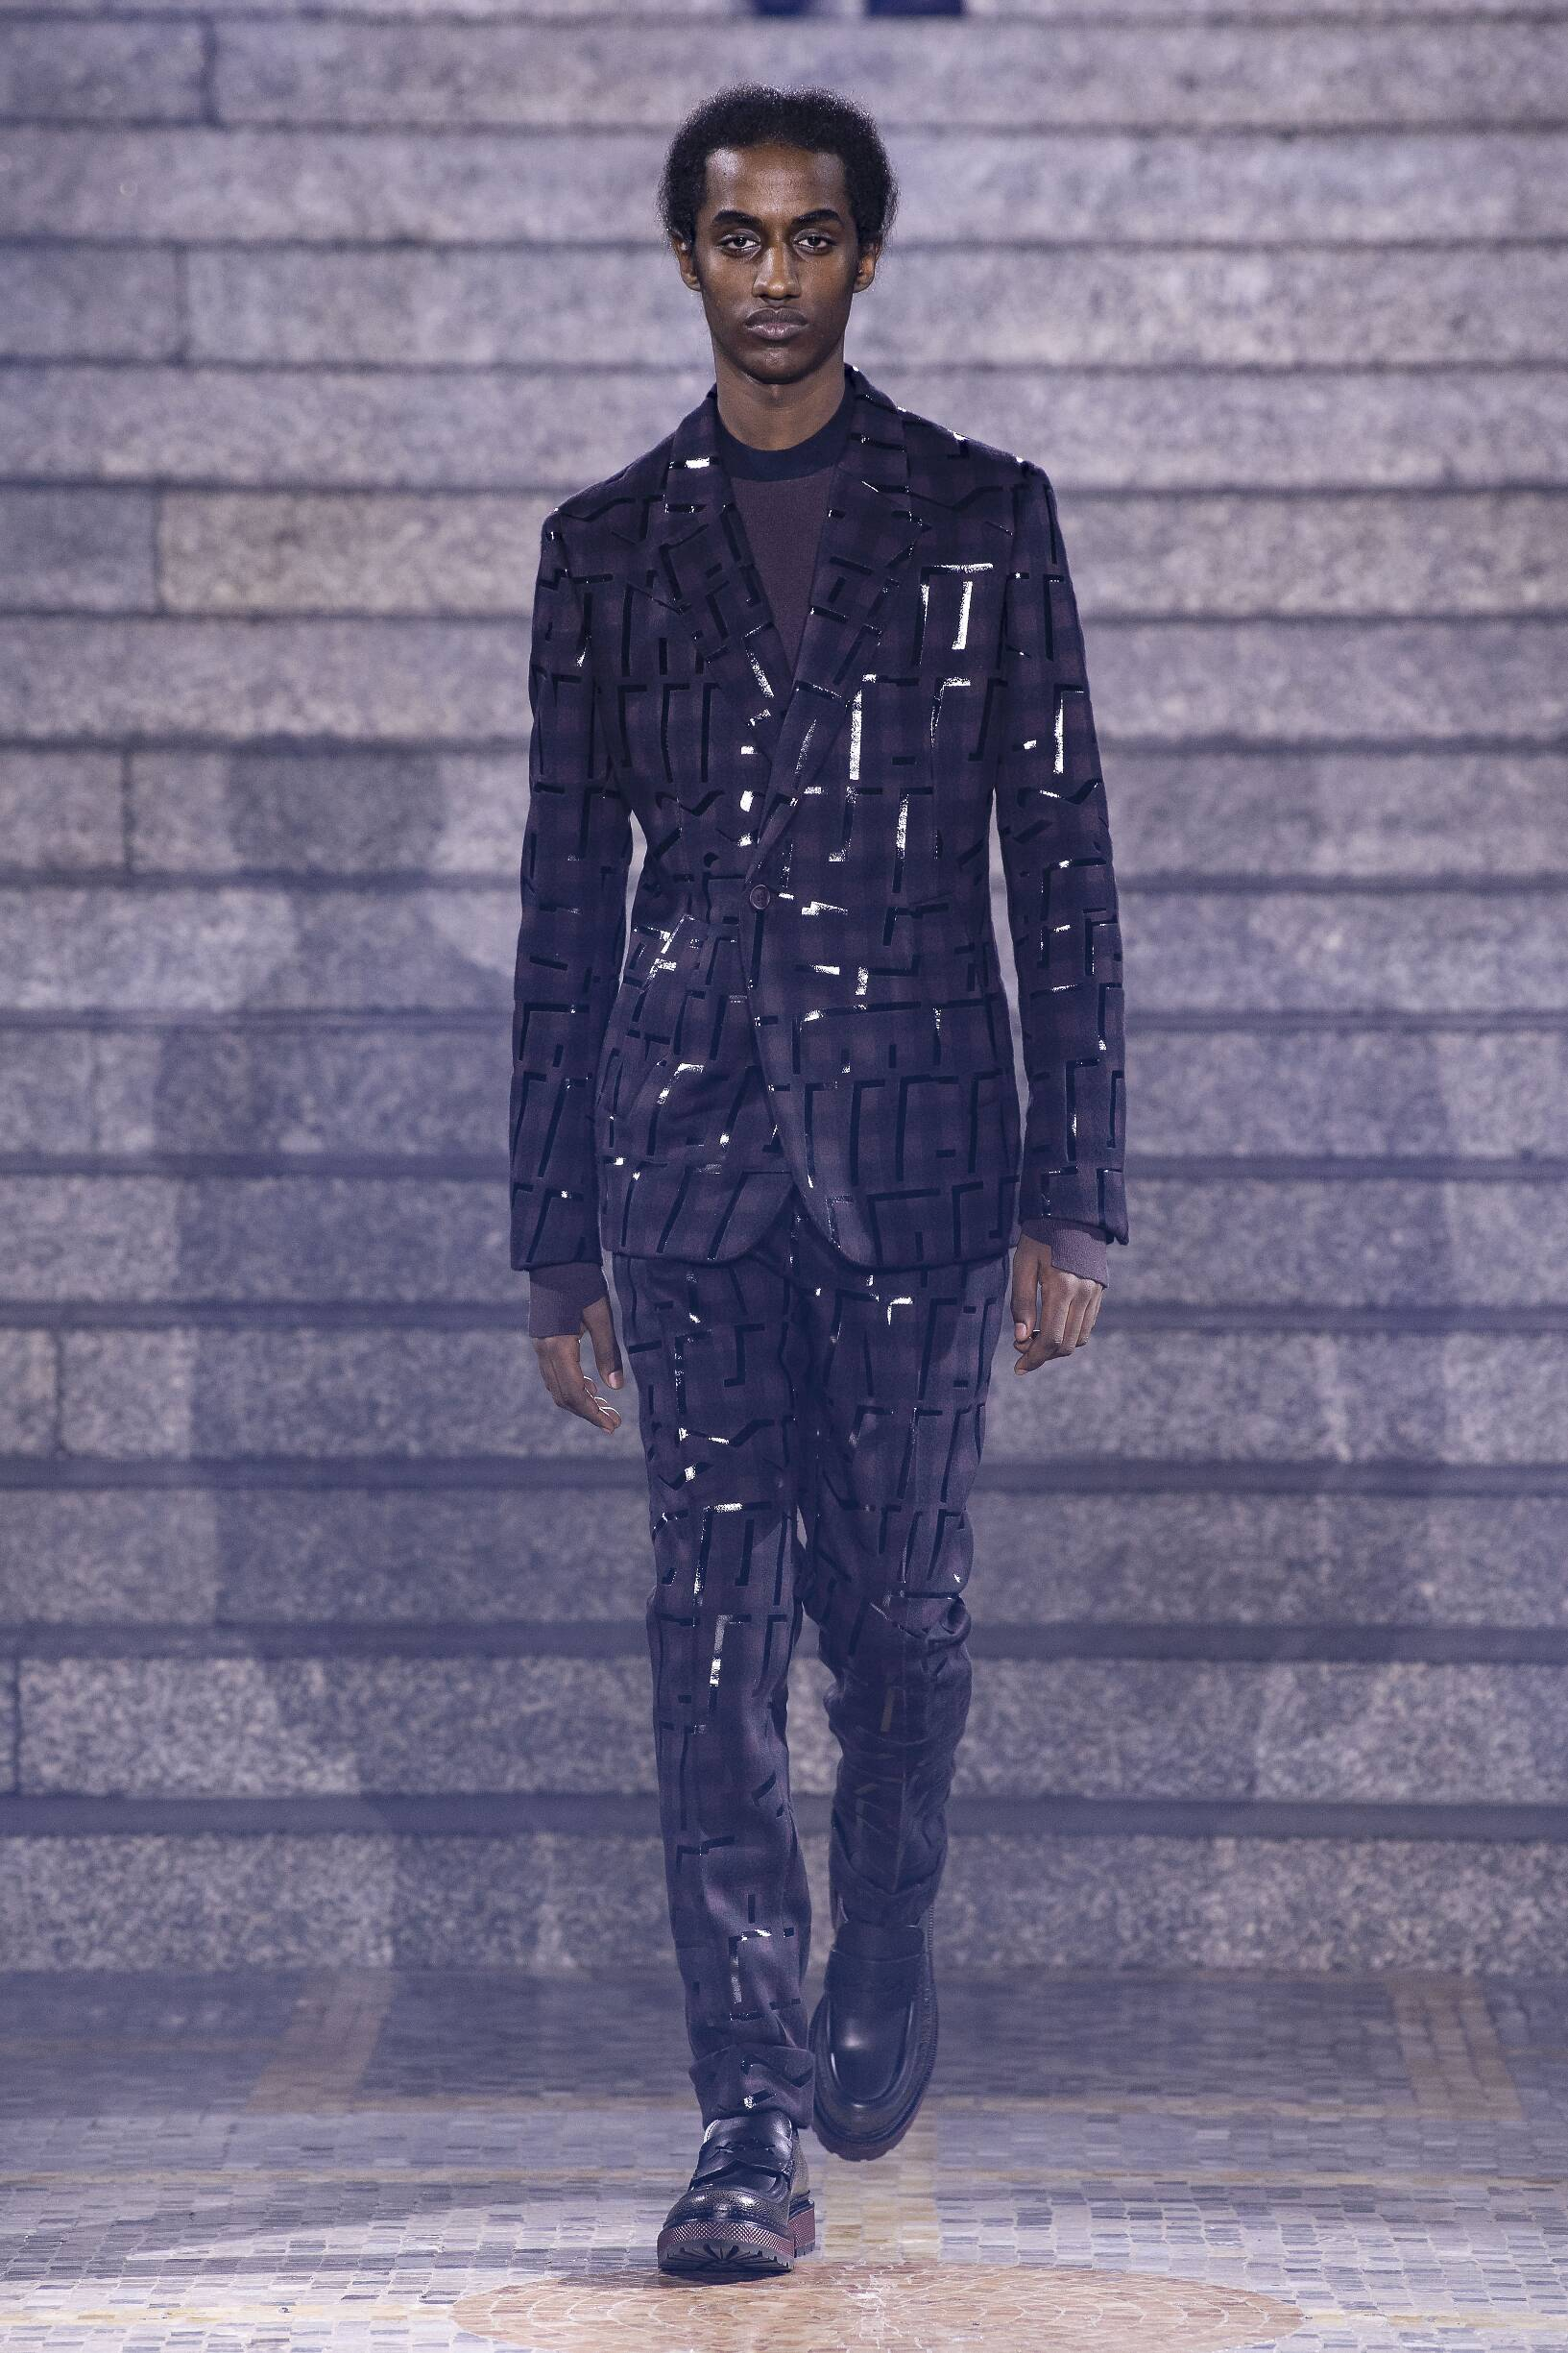 Menswear Winter Ermenegildo Zegna 2019